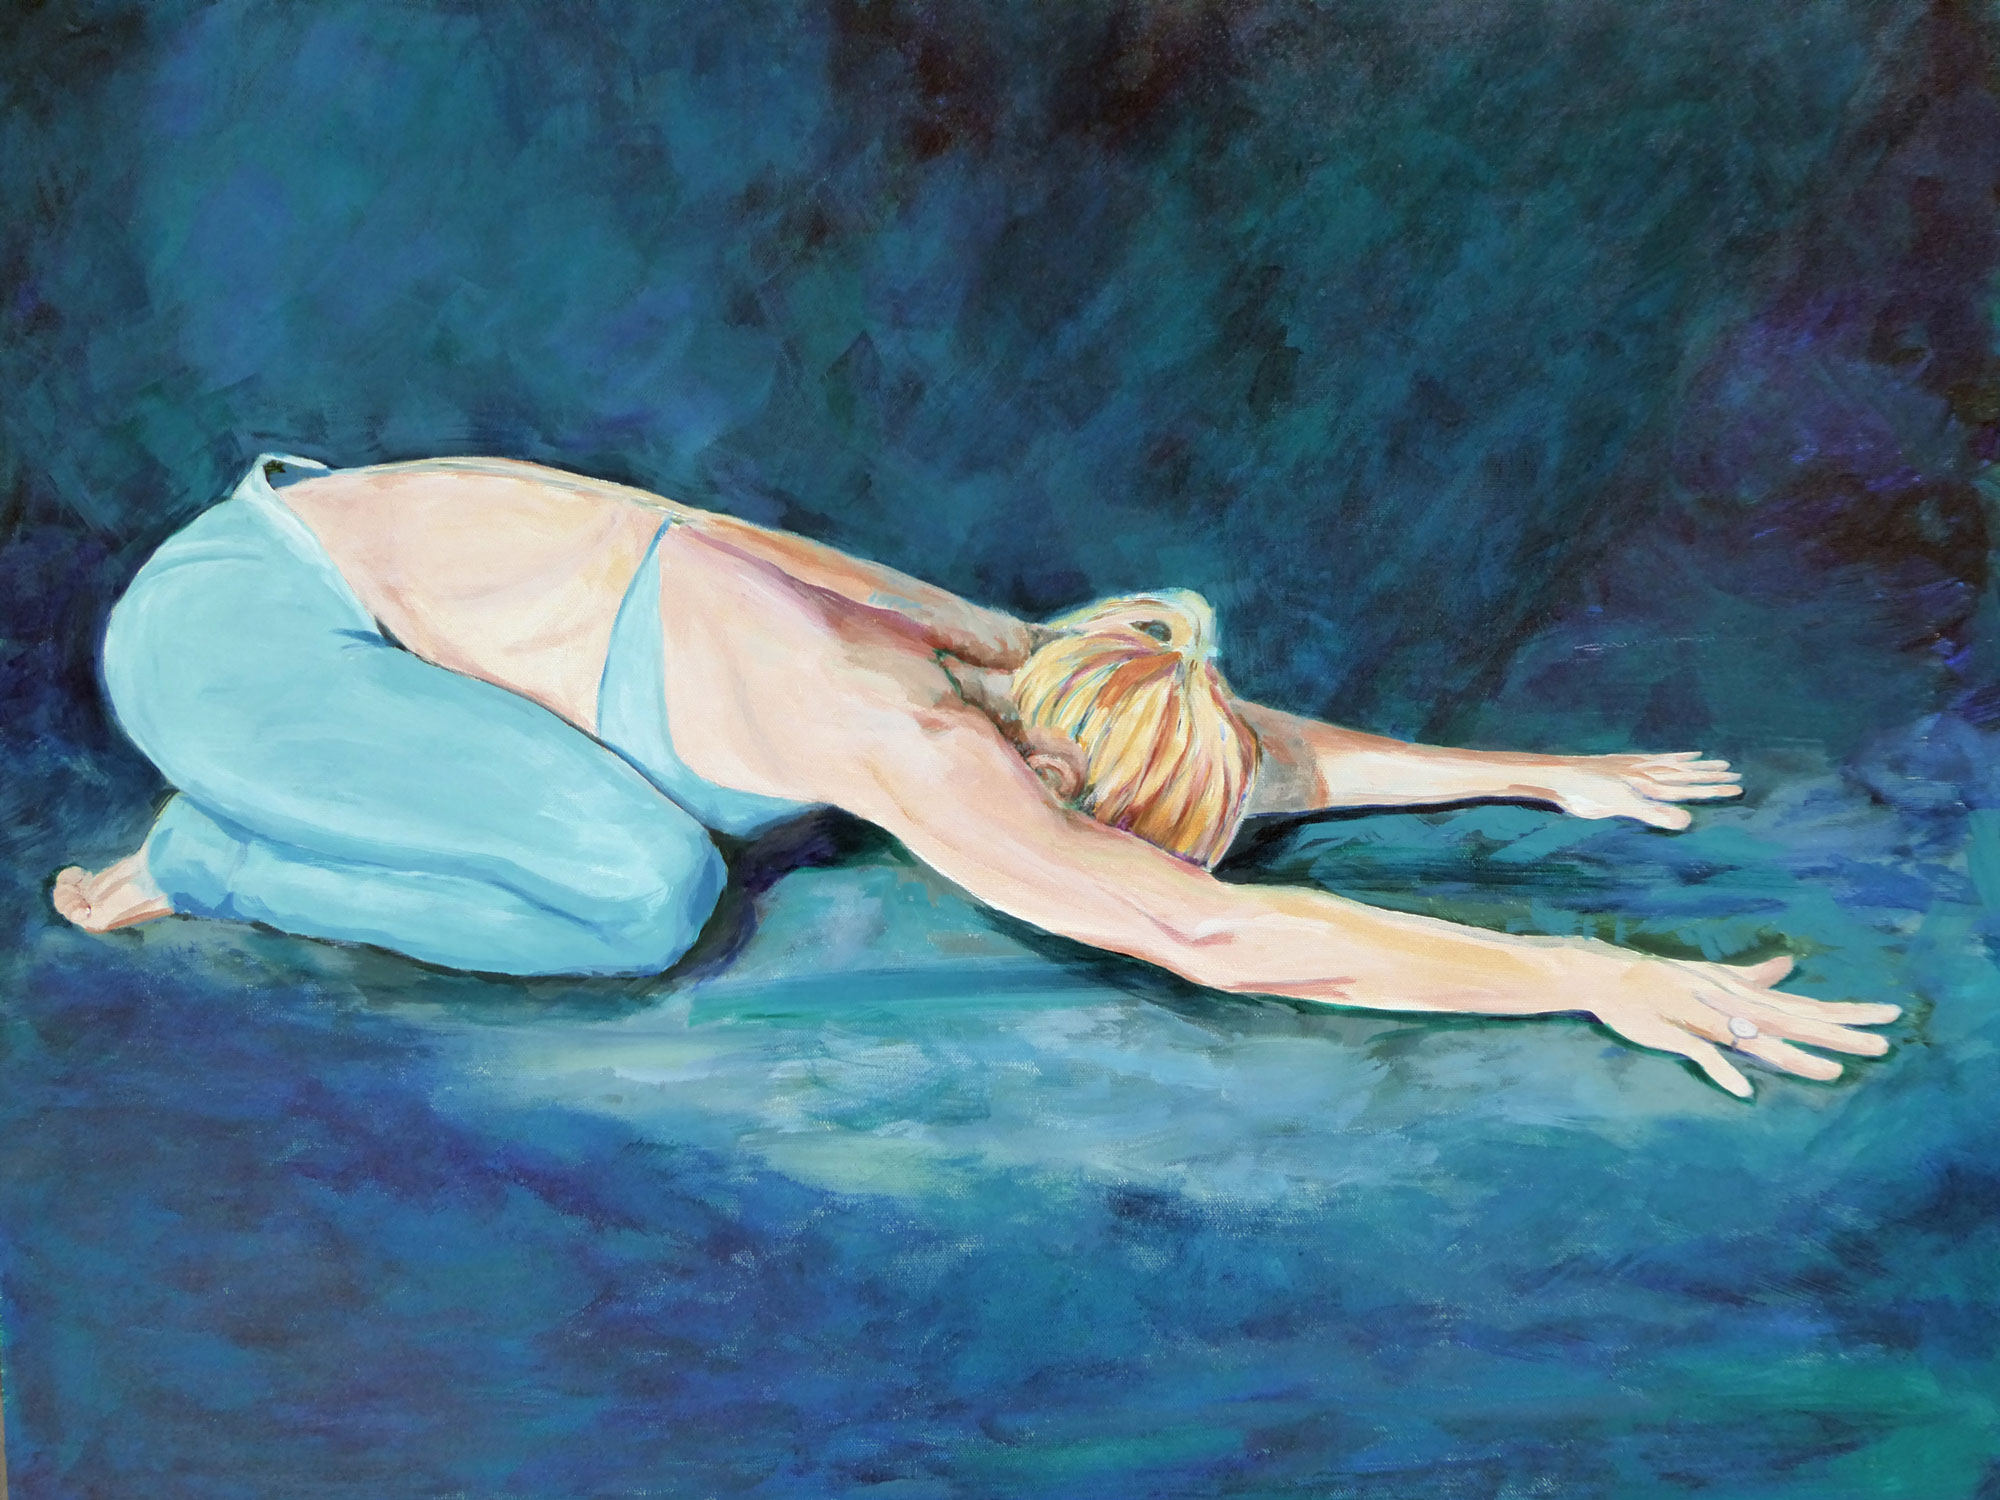 "The Yoga Portraits are hand painted original portrait on artist canvas. Great care is taken not only to capture likeness but also to express the light within every painting subject. This image, SG Child Pose, is 29"" W x 25"" H and is available for sale.  I welcome commissions to create unique, personalized artwork."